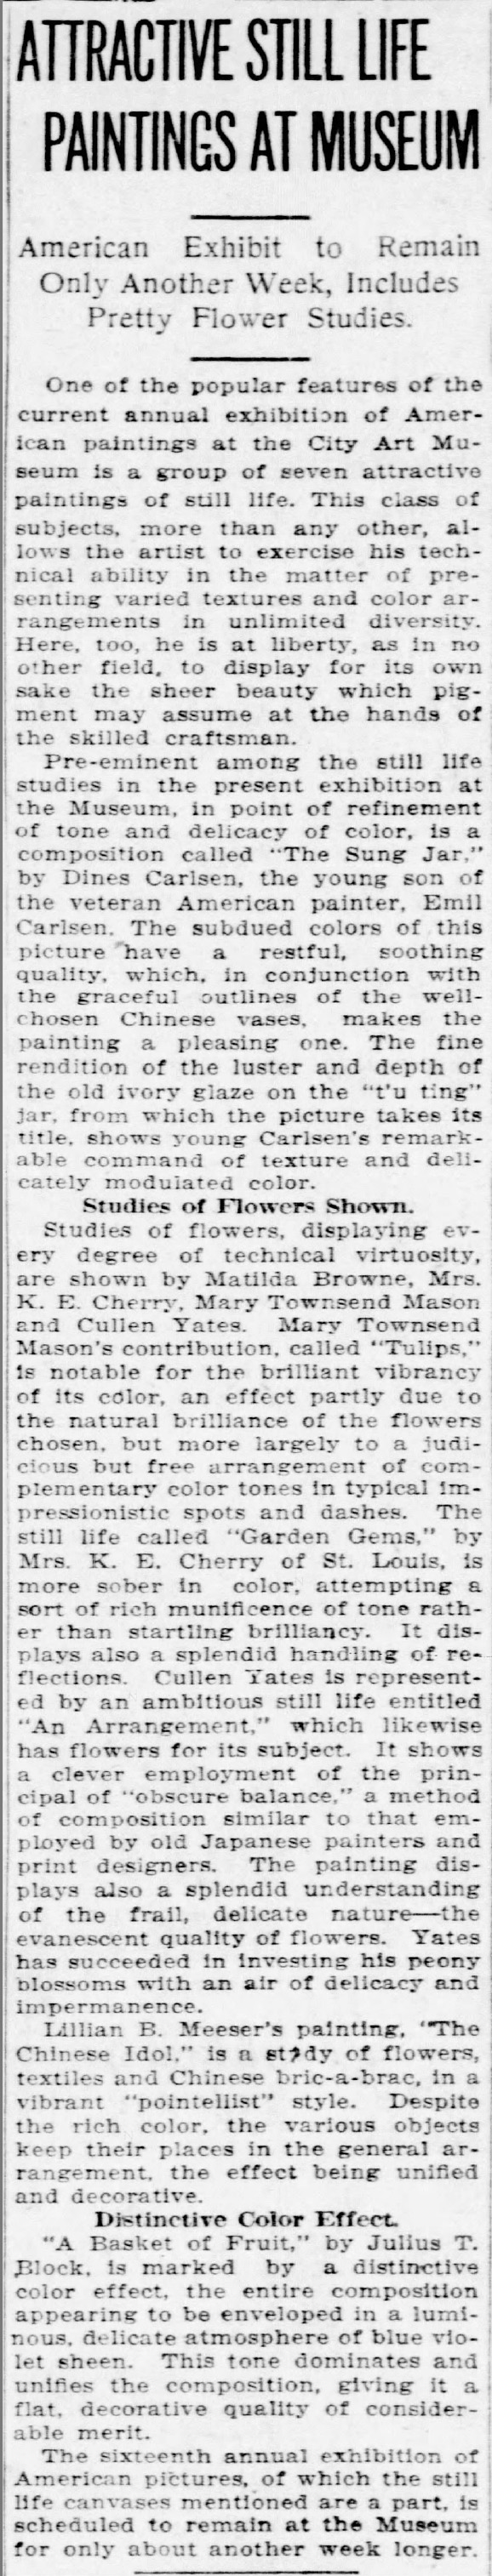 """St. Louis Post-Dispatch, St. Louis, MO, """"Attractive Still Life Paintings at Museum"""", October 16, 1921, Sunday, Main Edition, page 52"""